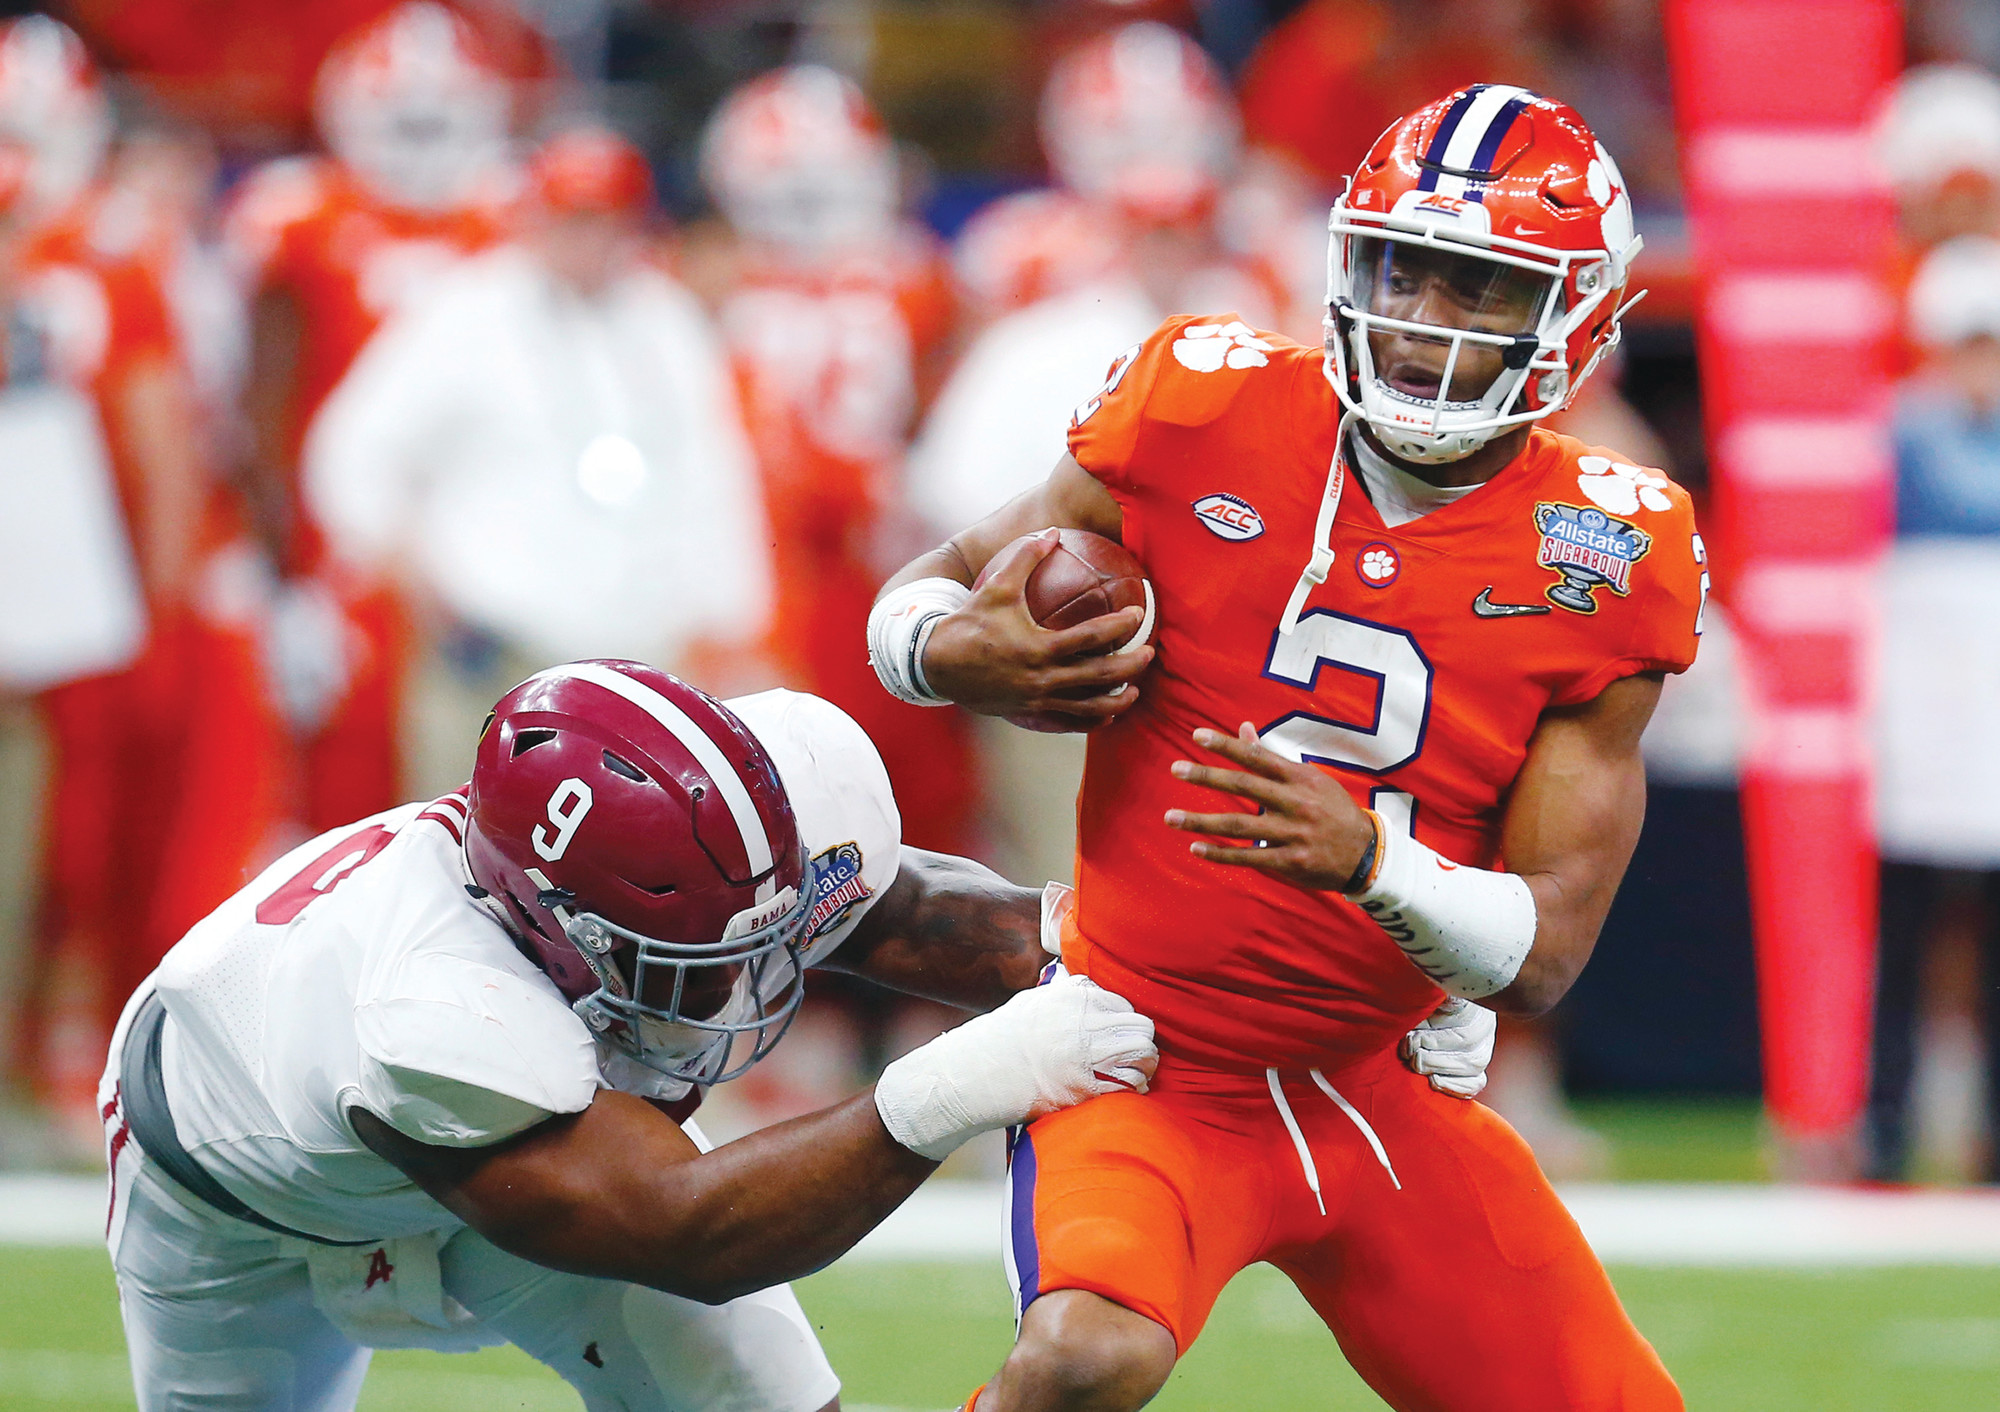 Clemson quarterback Kelly Bryant (2) led the Tigers to the College Football Playoff last season, but the question is being raised about whether he'll be replaced by freshman Trevor Lawrence.